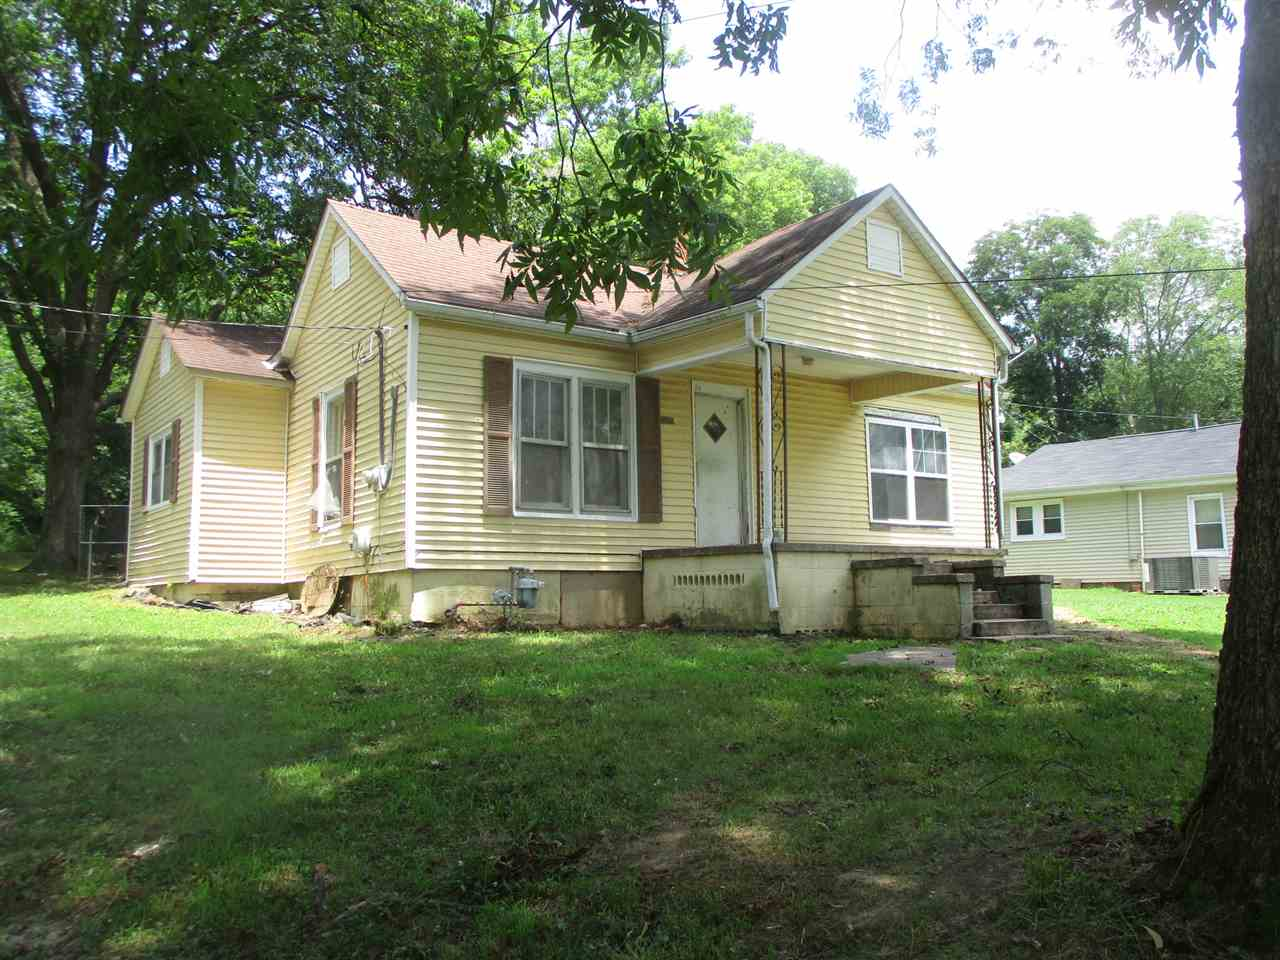 308 E Walnut,Dyer,Tennessee 38330,3 Bedrooms Bedrooms,1 BathroomBathrooms,Residential,308 E Walnut,189296